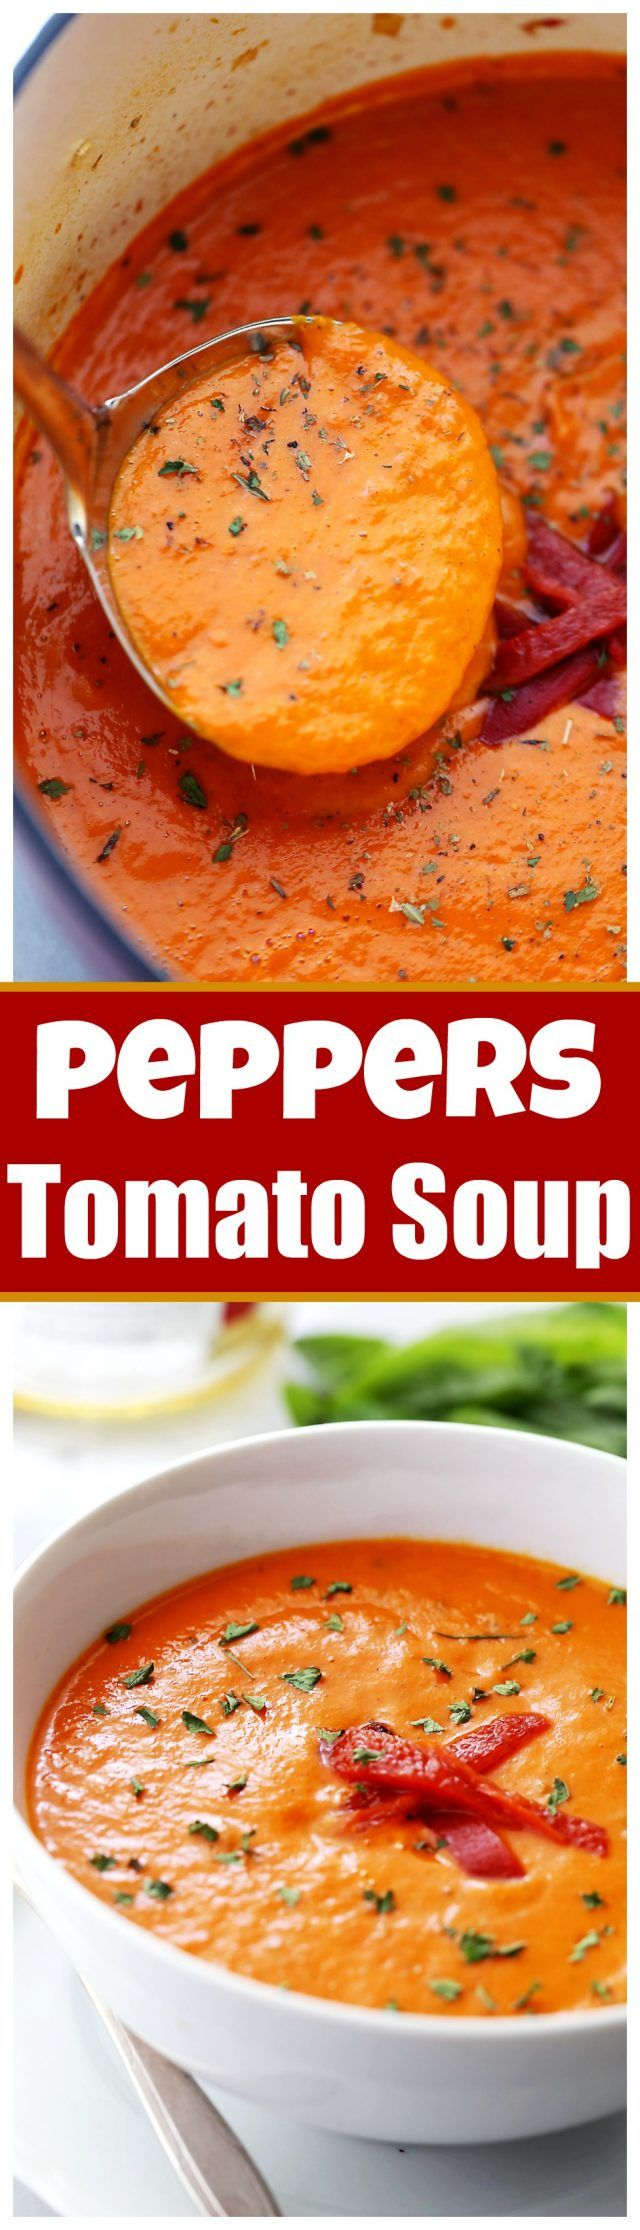 Piquillo Peppers Tomato Soup